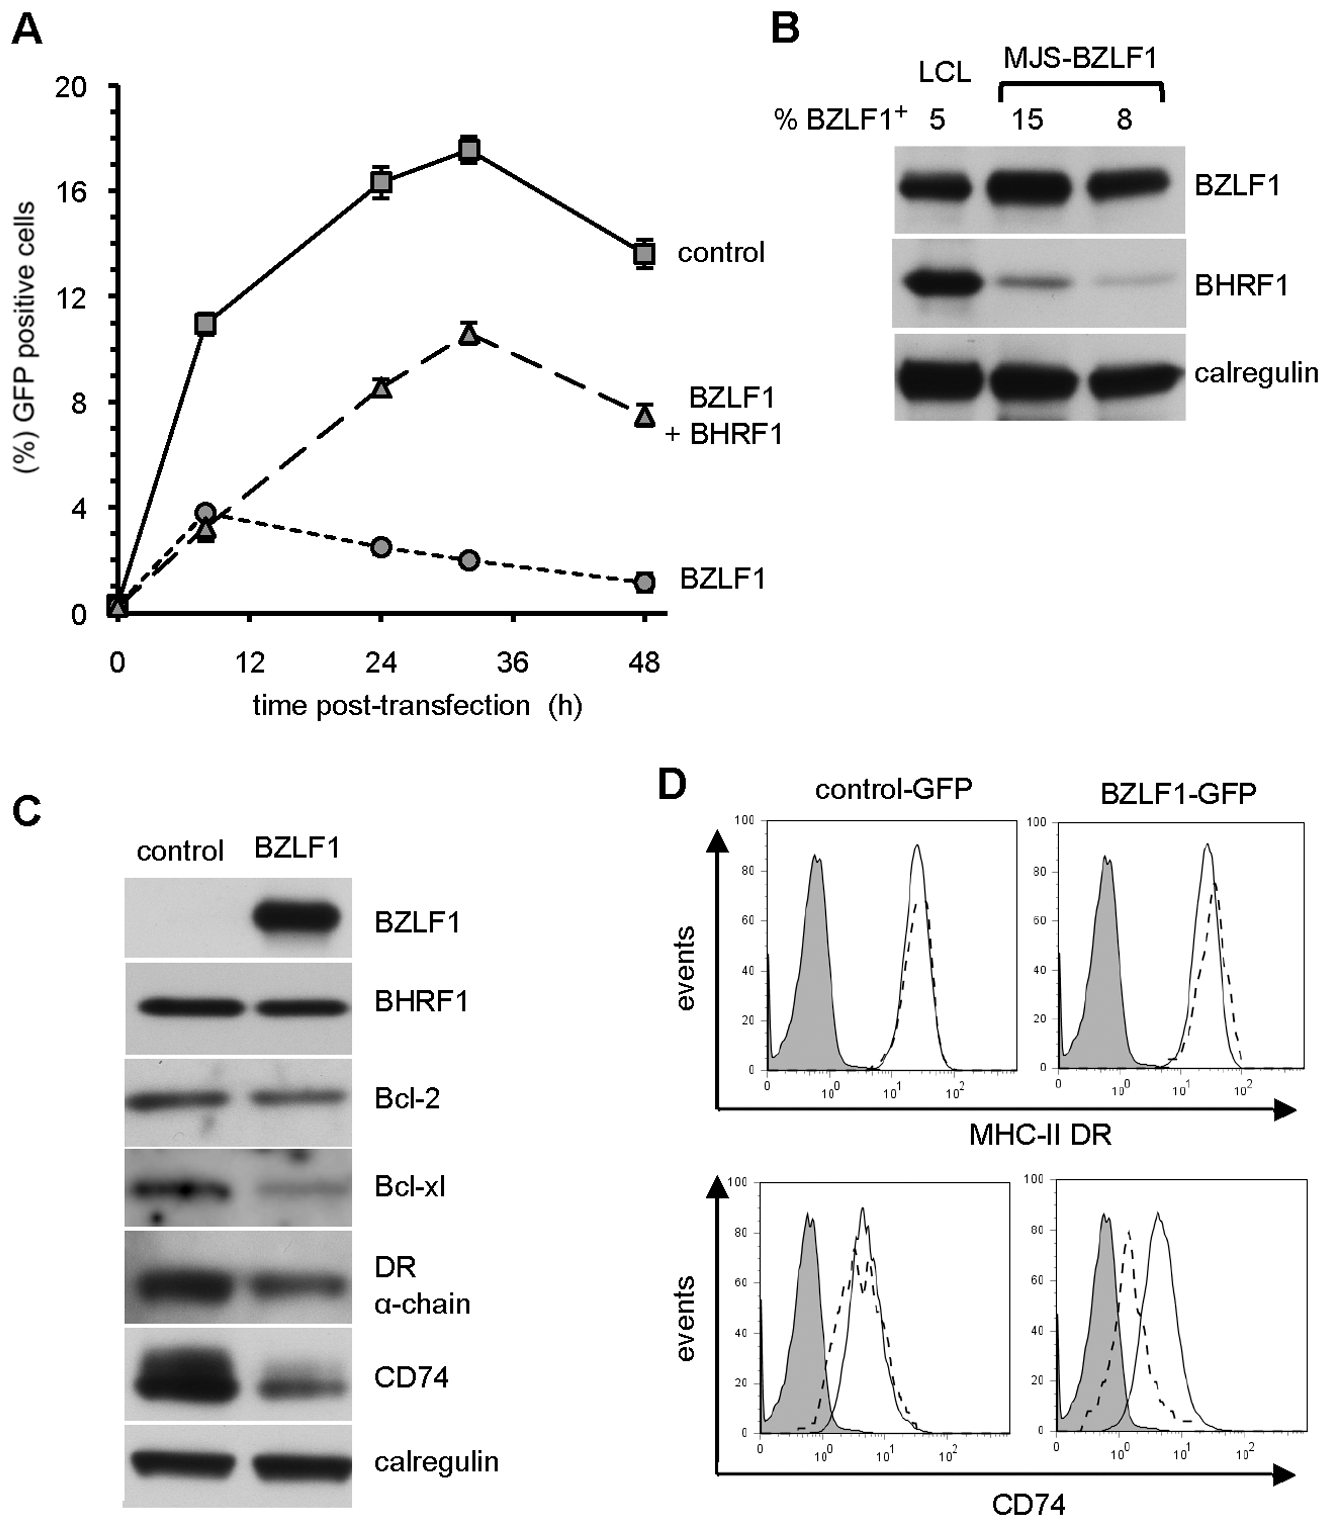 BHRF1 counteracts BZLF1 toxicity.